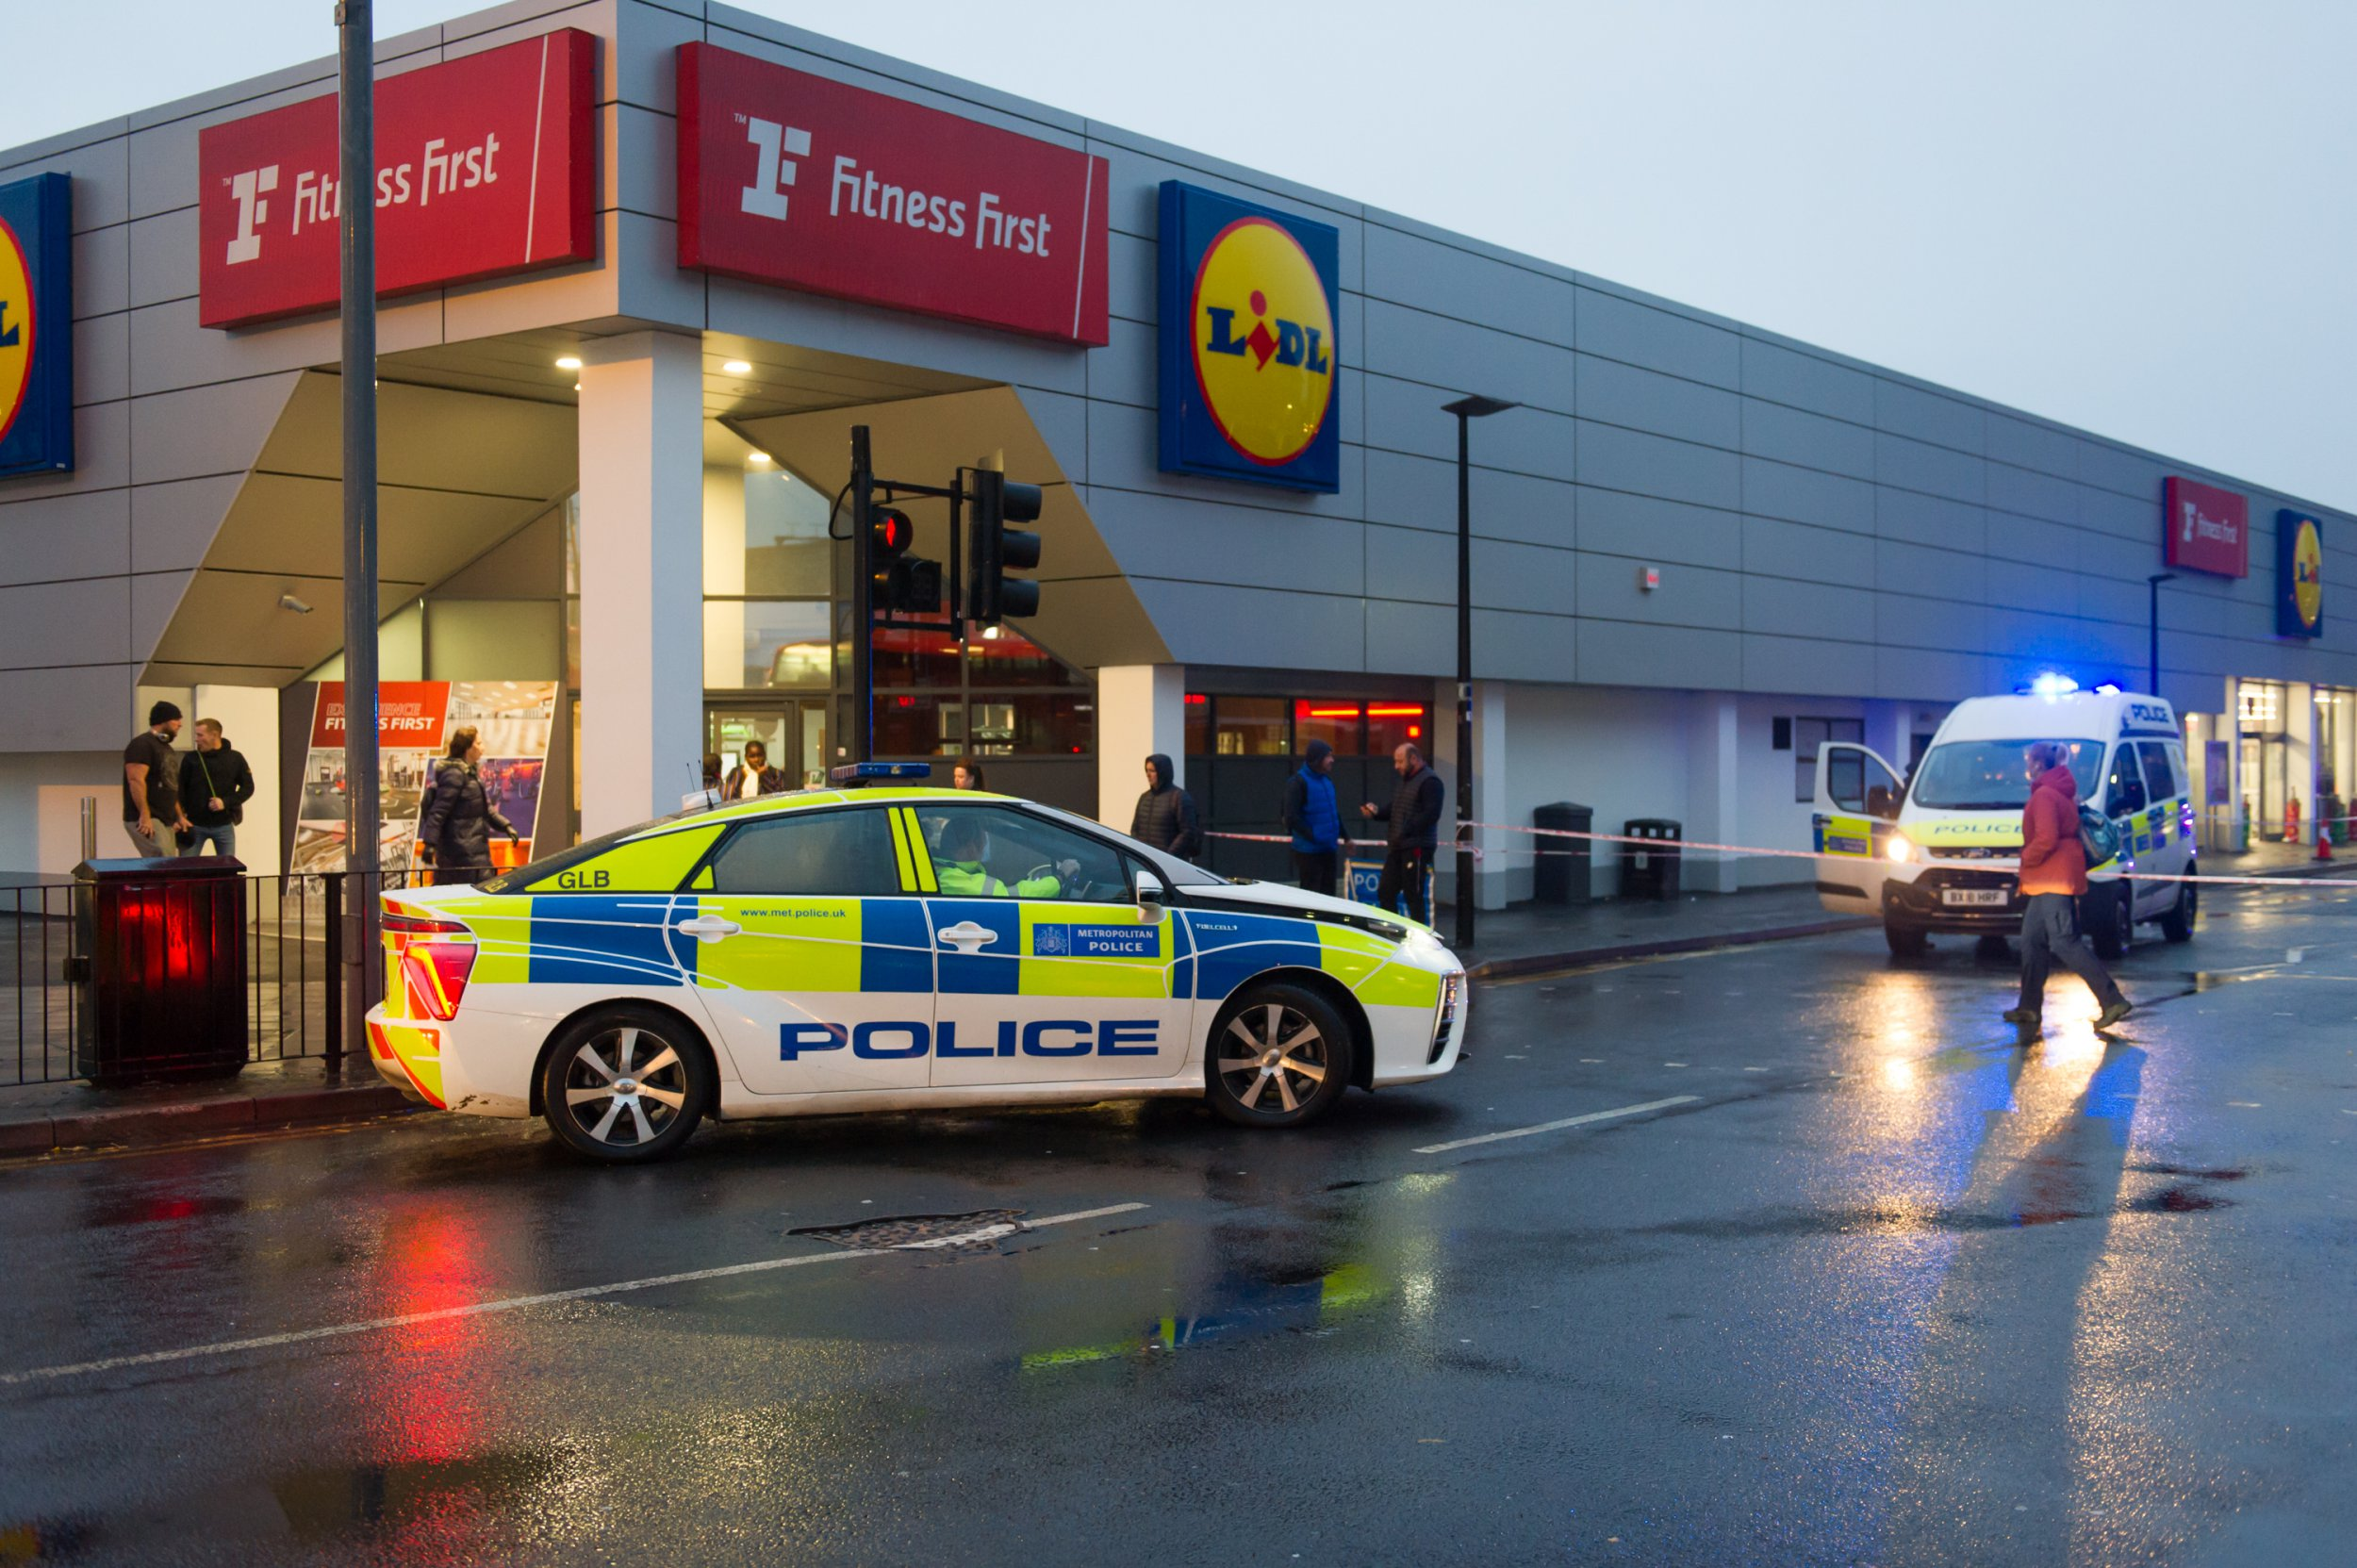 Image ??Licensed to i-Images Picture Agency. 20/11/2018. London, United Kingdom. Romford Lidl stabbing. A police cordon can be seen around the crime scene. A man has been stabbed outside a Lidl in Romford. Police said officers were called at 13:19hrs to reports of a 19-year-old male knifed at the supermarket in Atlanta Boulevard. Officers, LAS and London's Air Ambulance attended the scene and the teen was found with stab injuries. He has been taken to a east London hospital and his condition is not known. Picture by Gustavo Valiente / i-Images